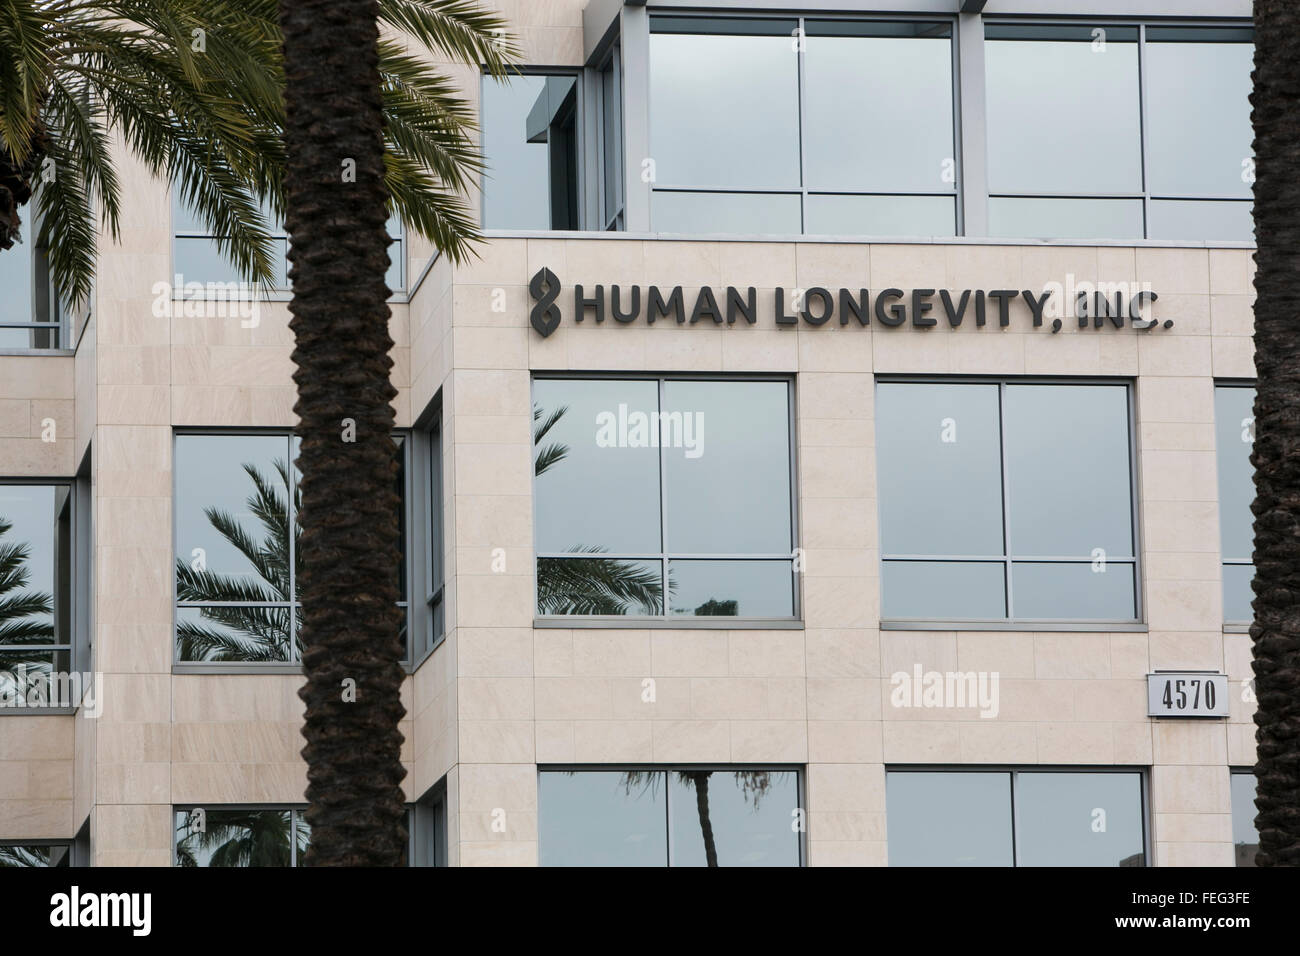 A logo sign outside of the headquarters of Human Longevity, Inc., in San Diego, California on January 30, 2016. - Stock Image